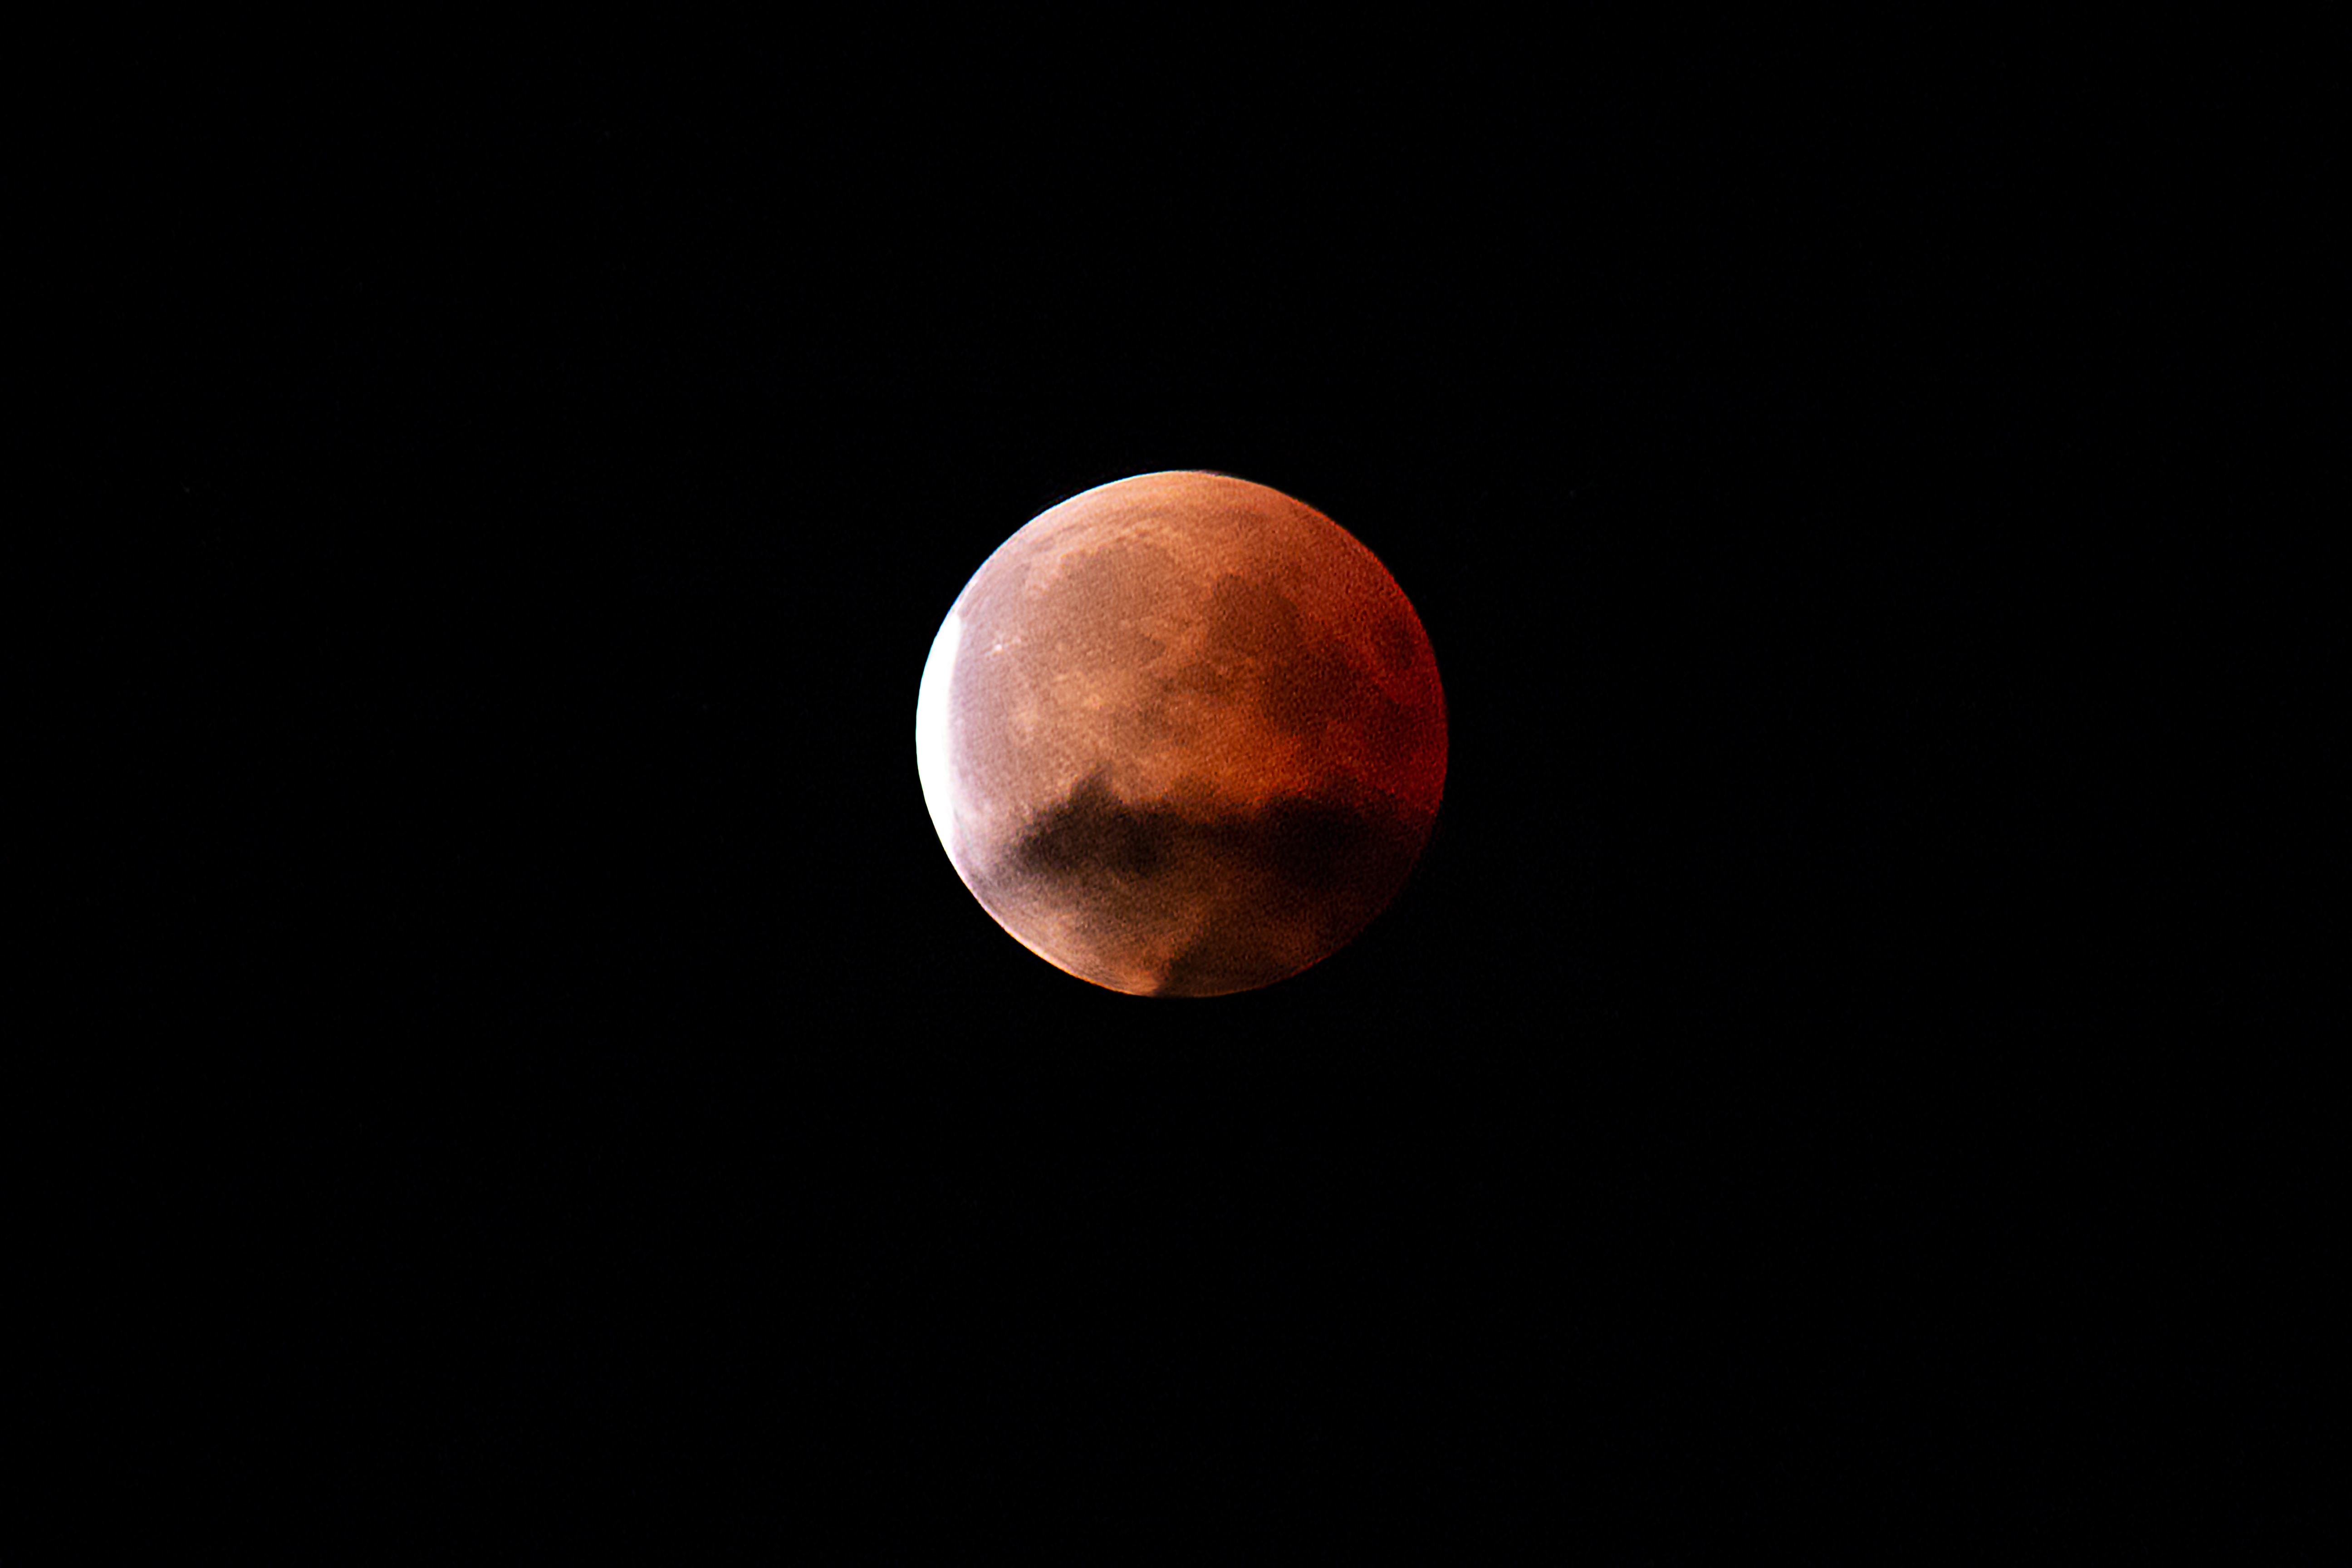 blood moon during night time 1574943223 - Blood Moon During Night Time -